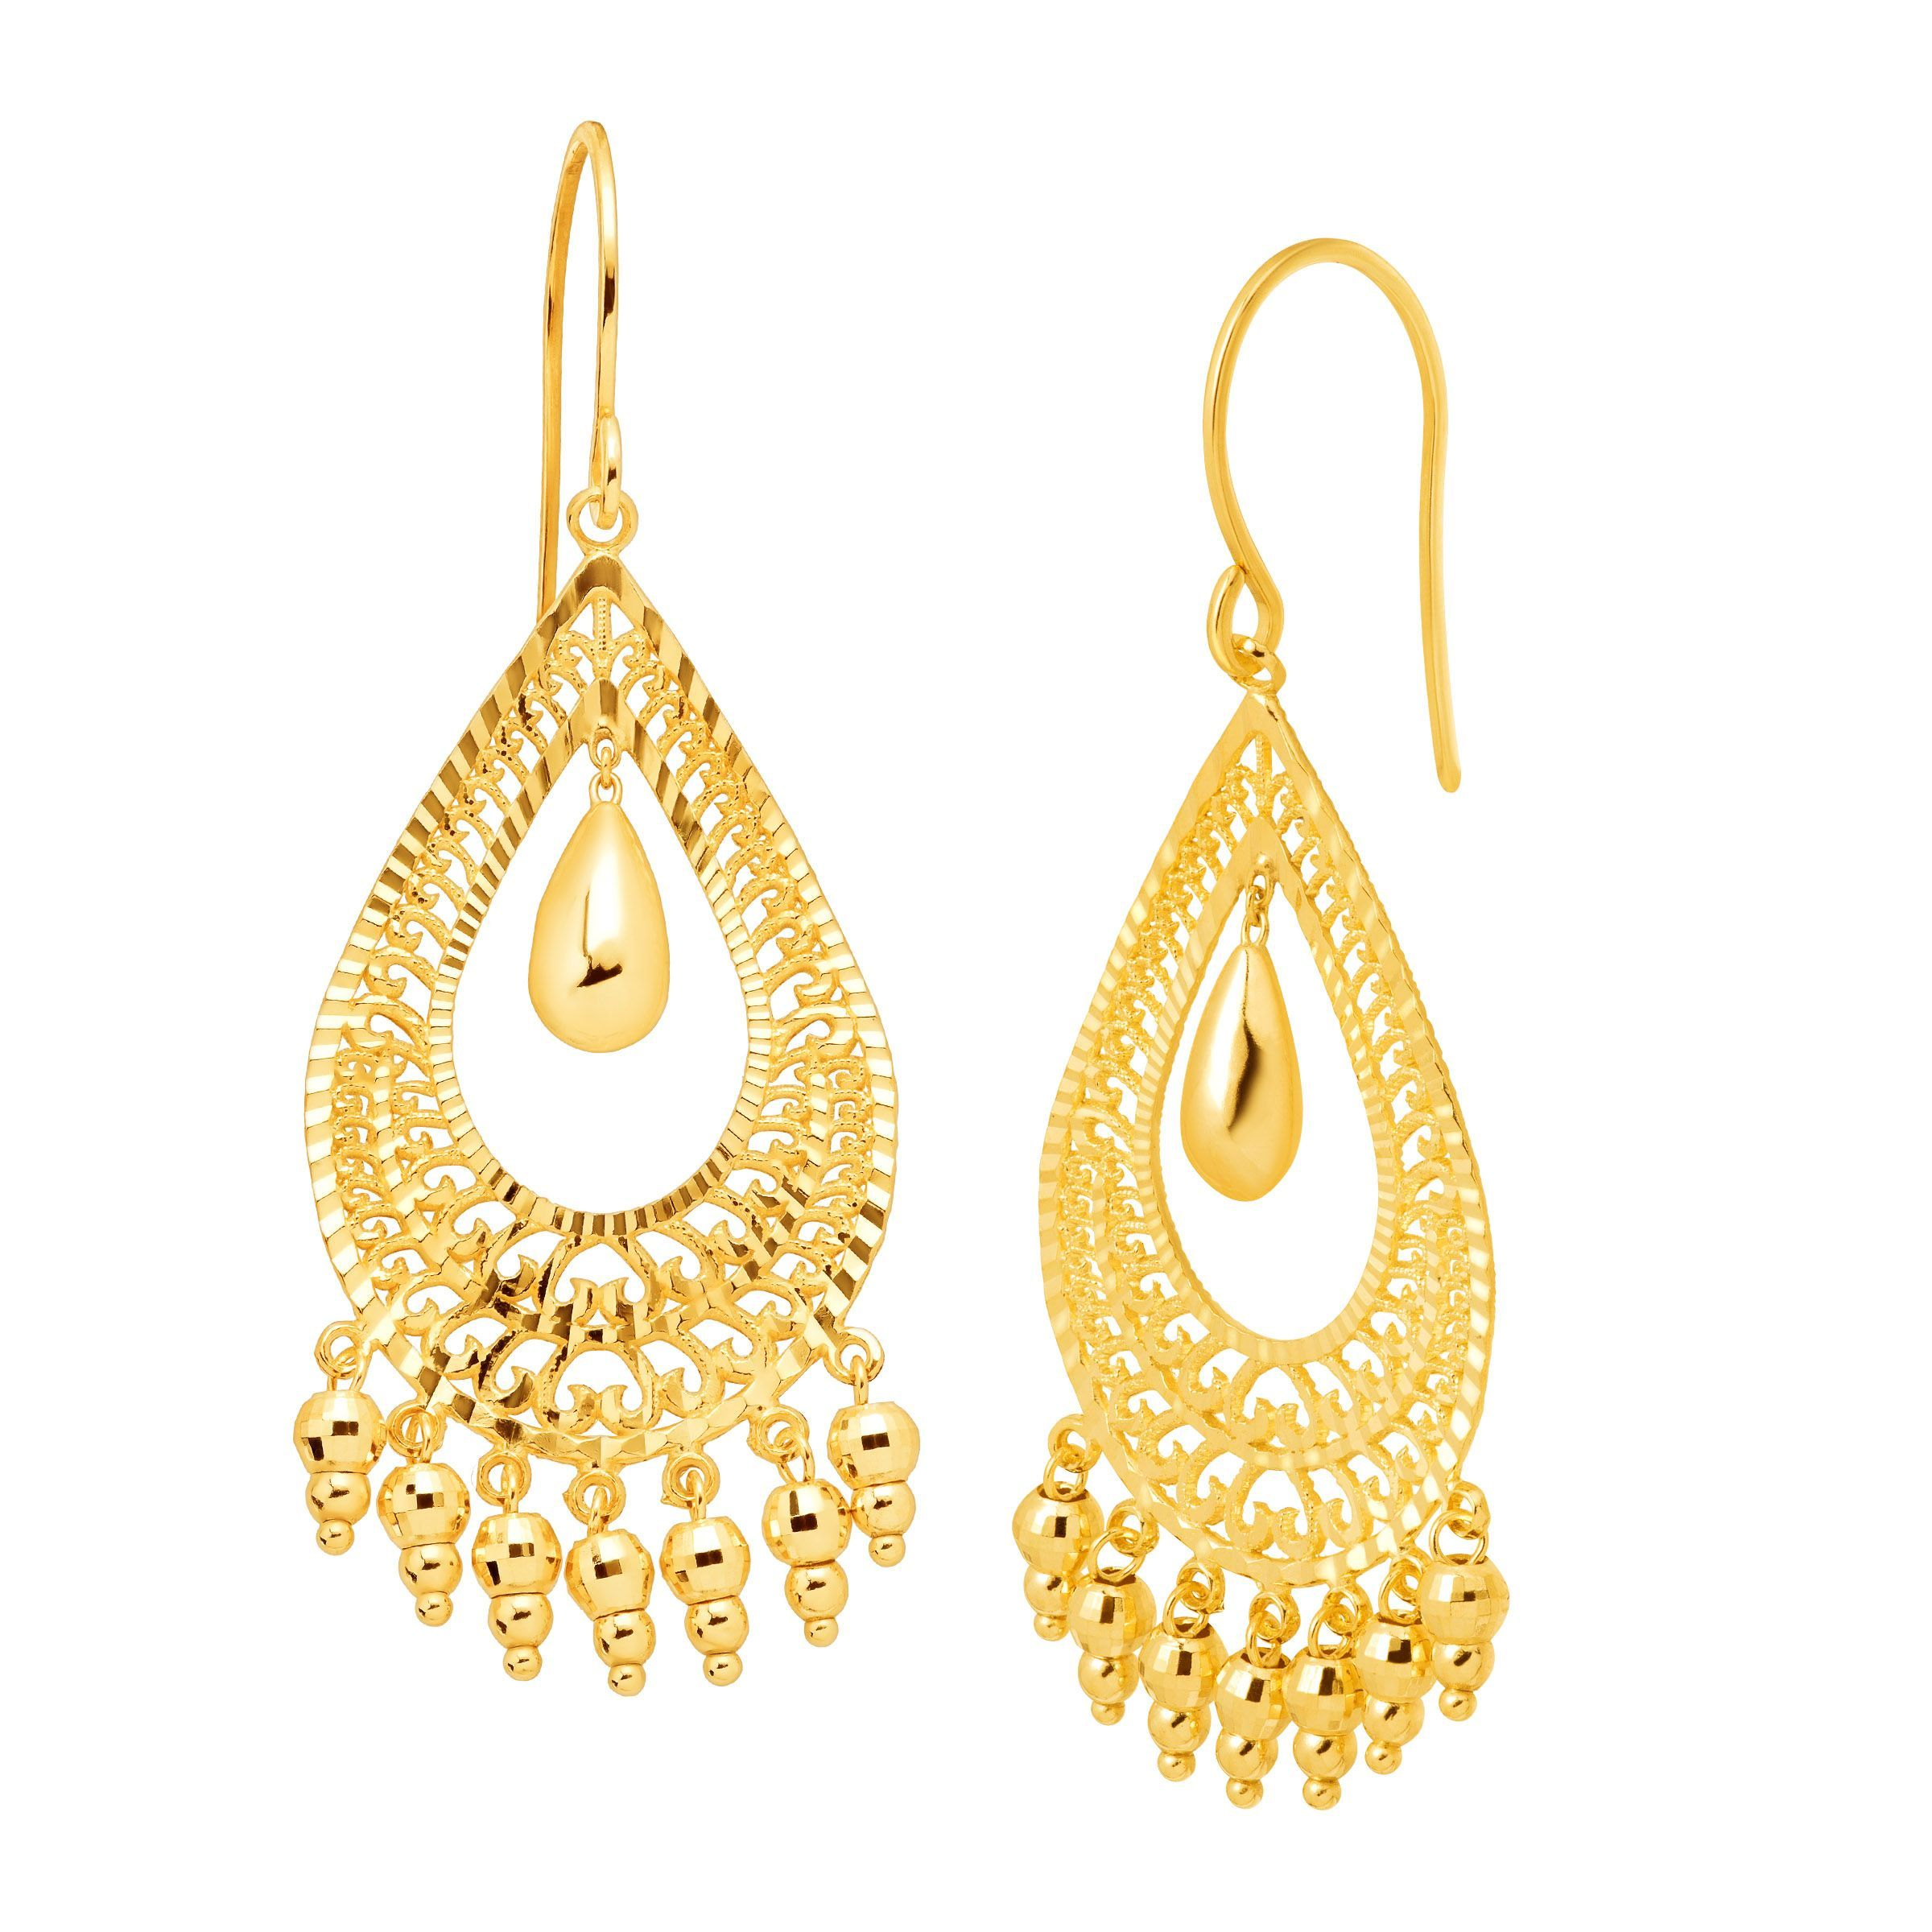 Eternity Gold Teardrop Fringe Drop Earrings In 10k